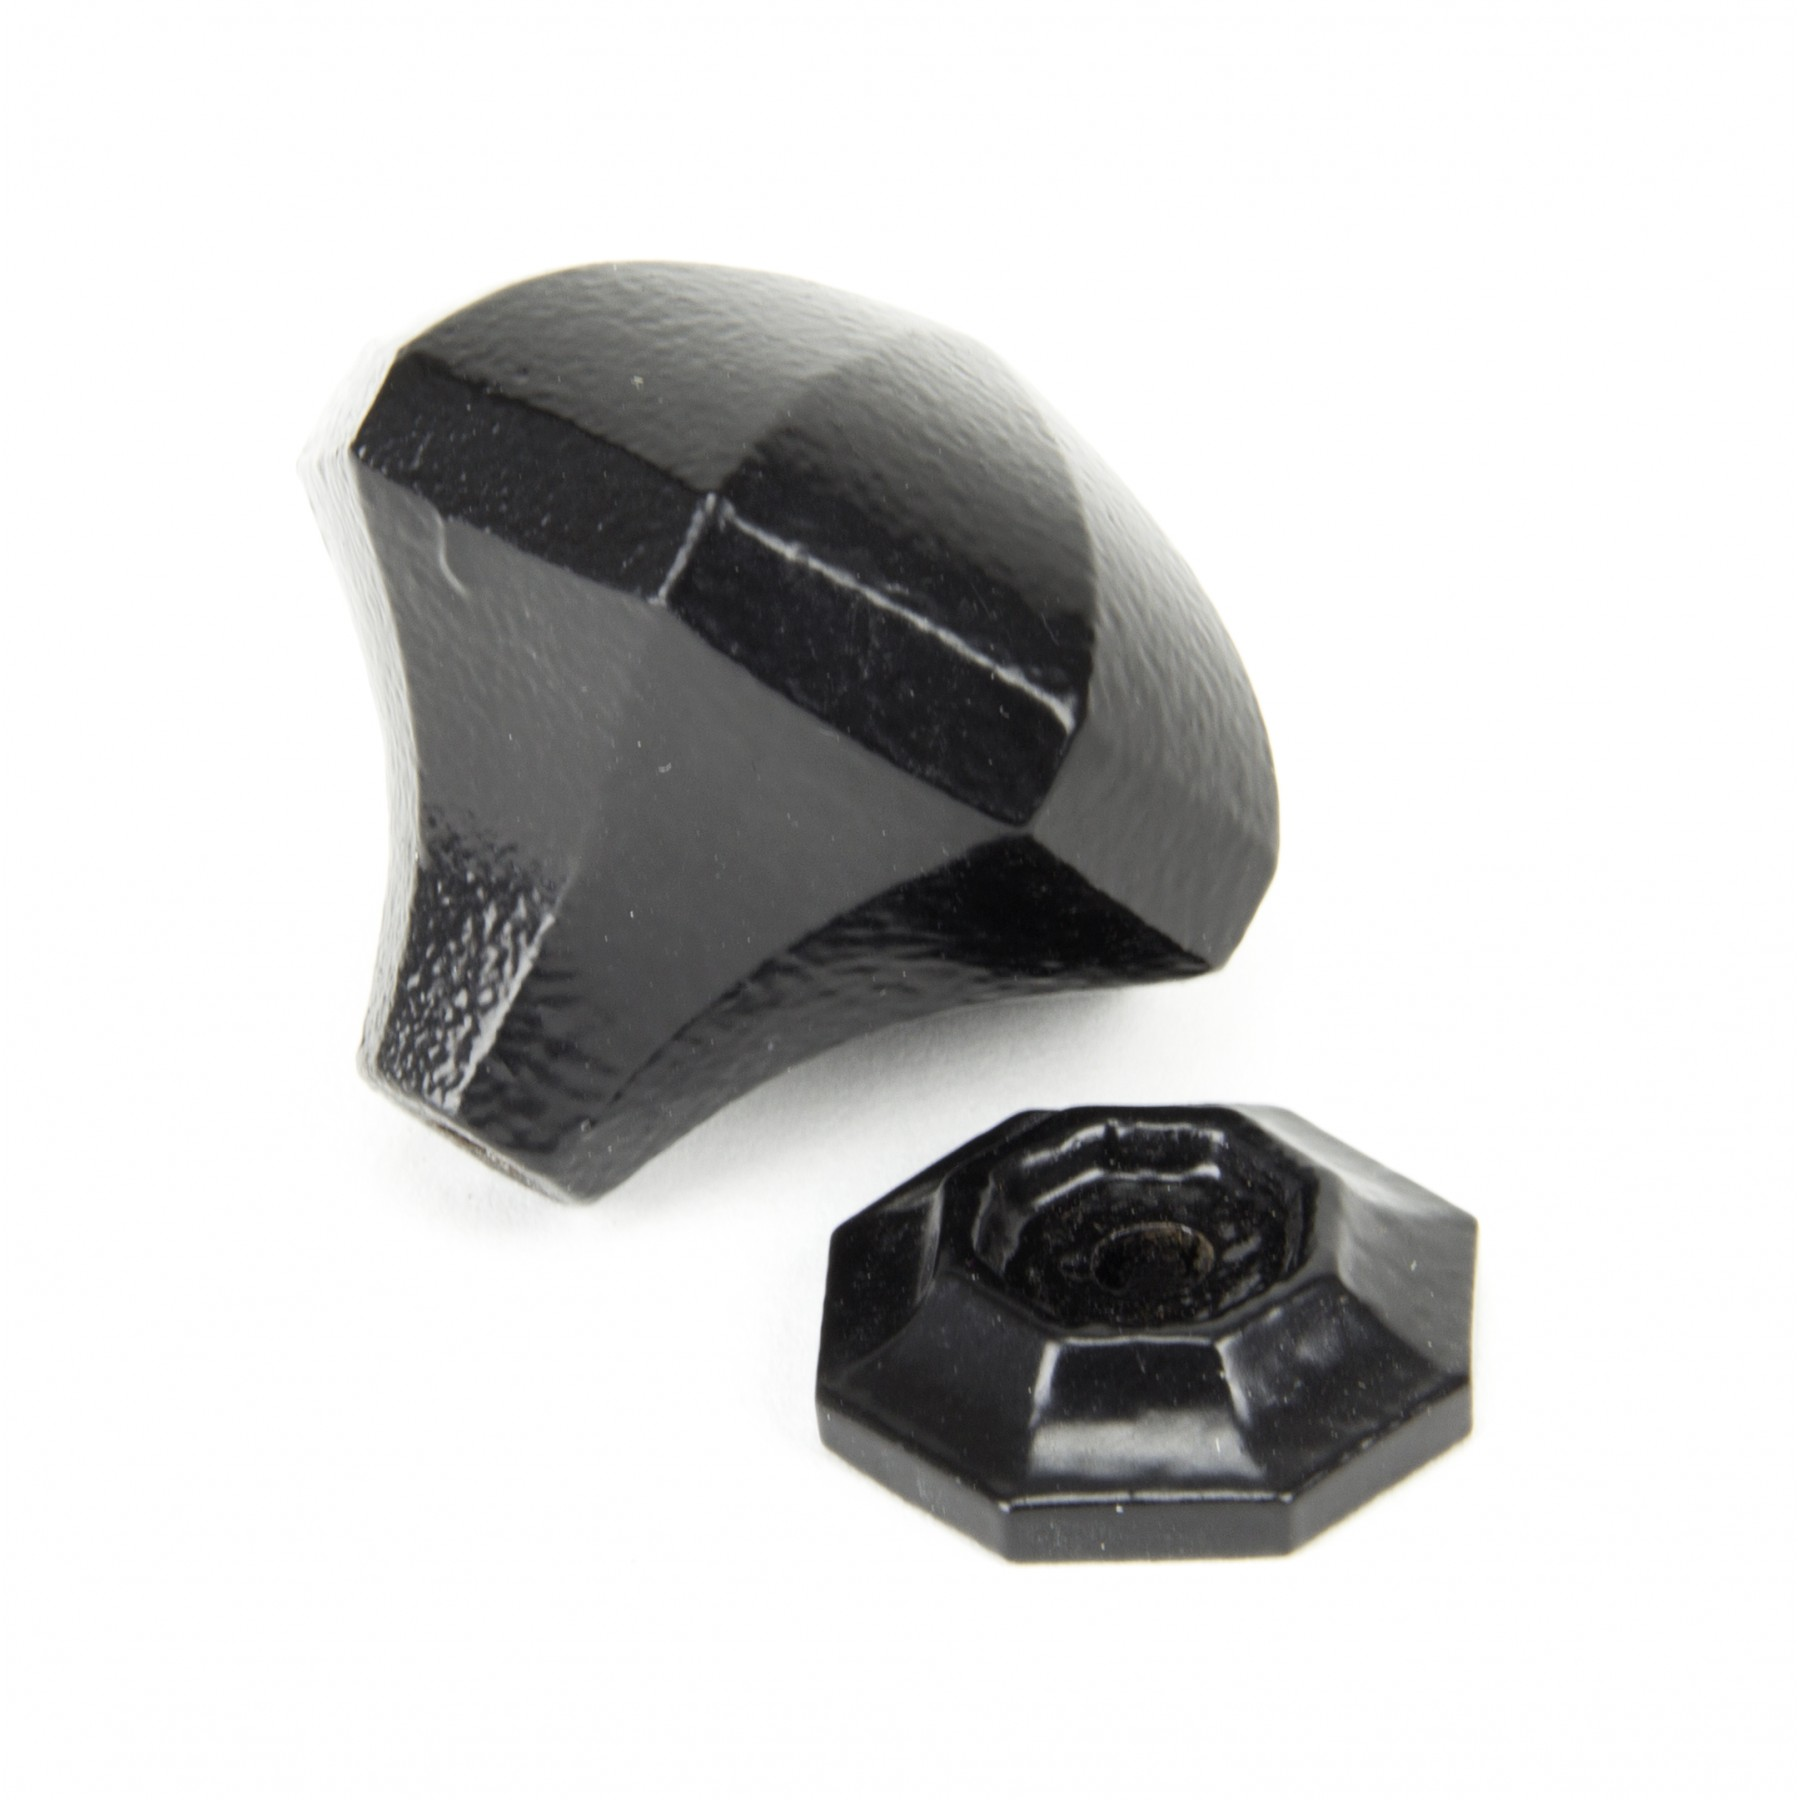 Beeswax Octagonal Cabinet Knobs Small: Black Octagonal Cabinet Knob (Large)